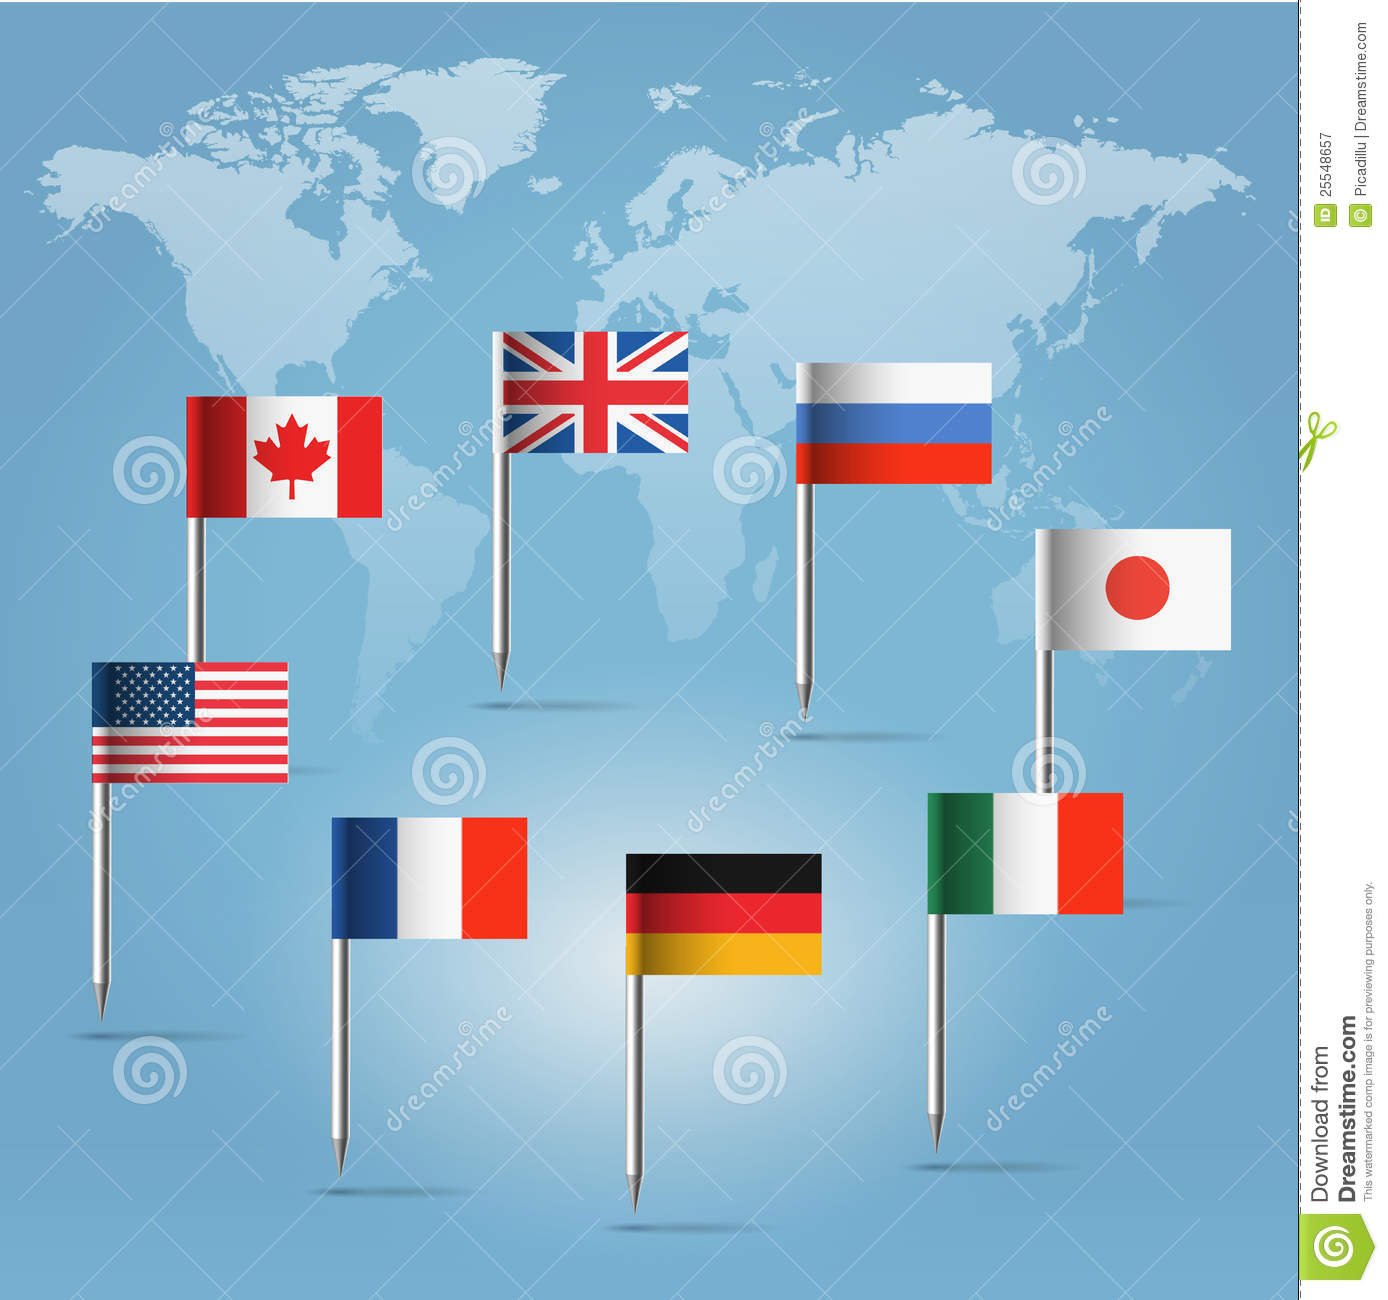 G8 flag pins over world map silhouette stock vector illustration g8 flag pins over world map silhouette gumiabroncs Images